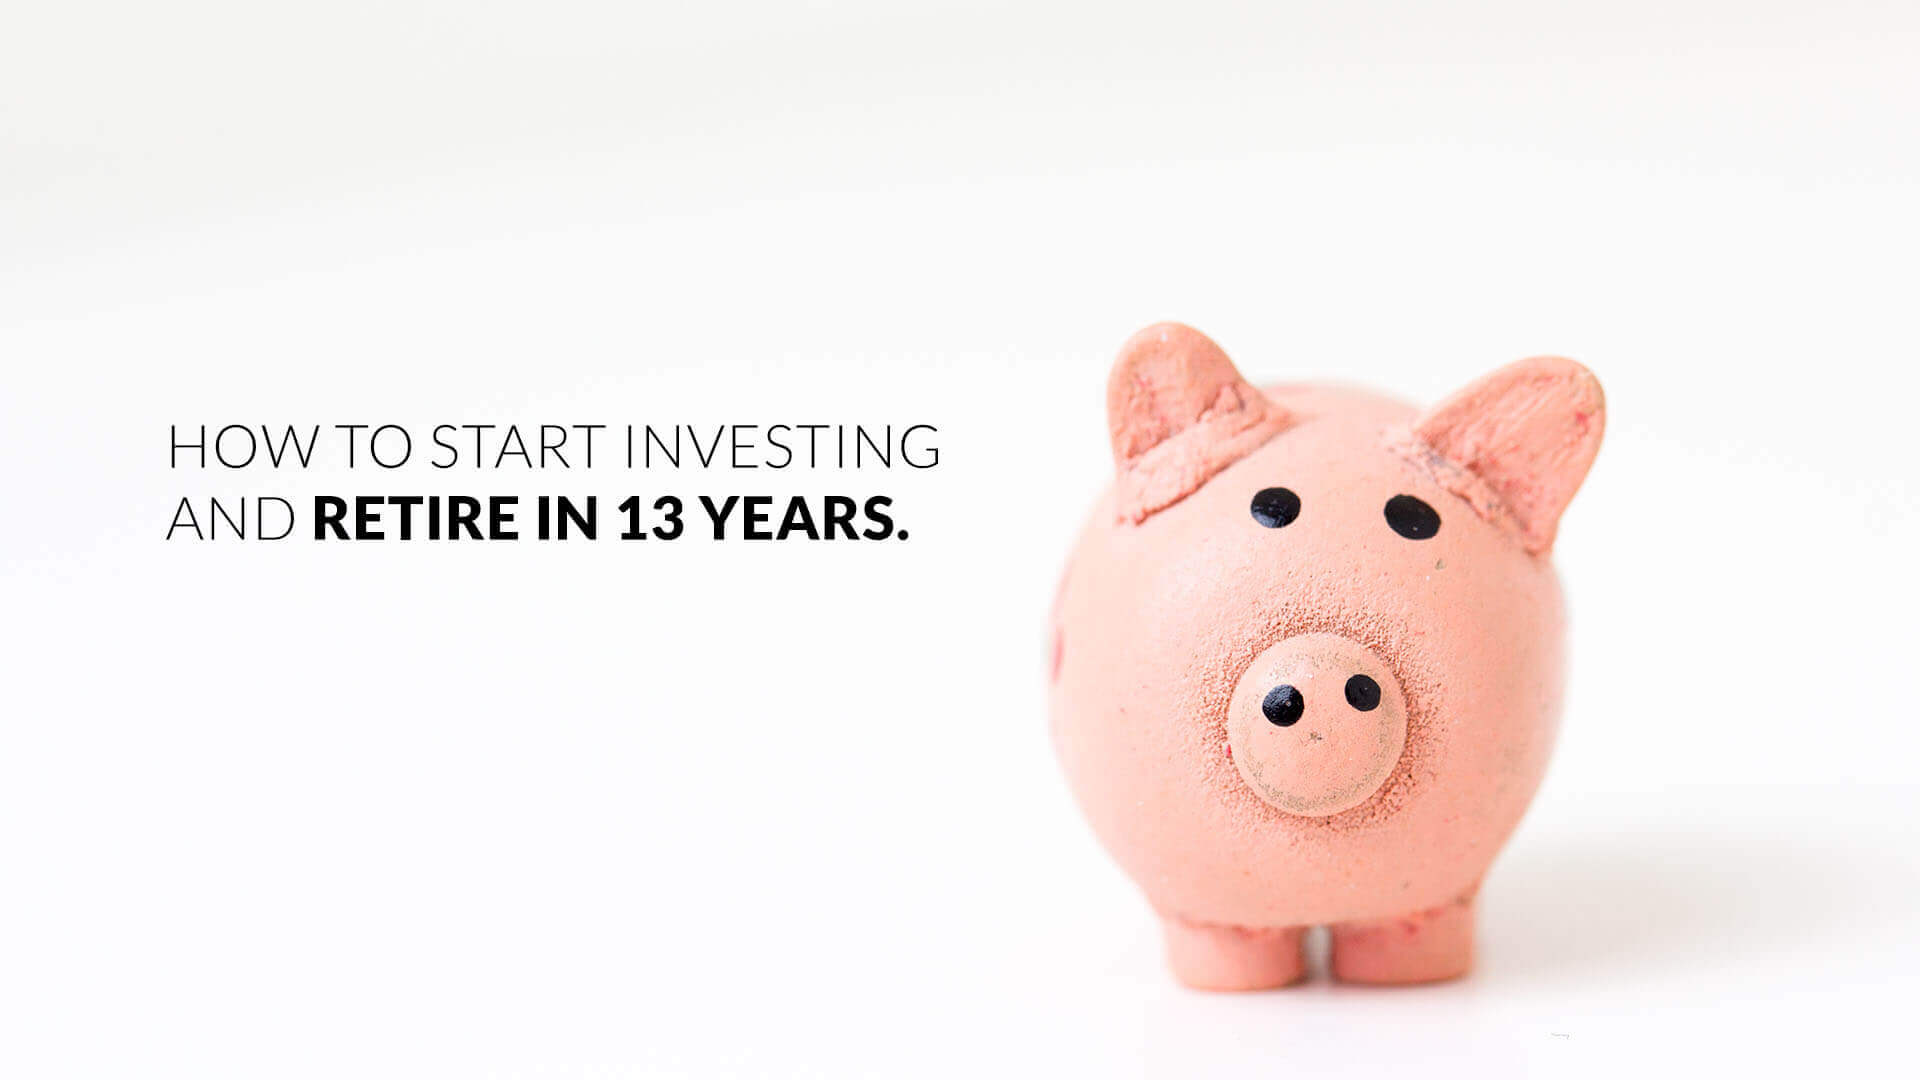 How To Start Investing And Retire In 13 Years